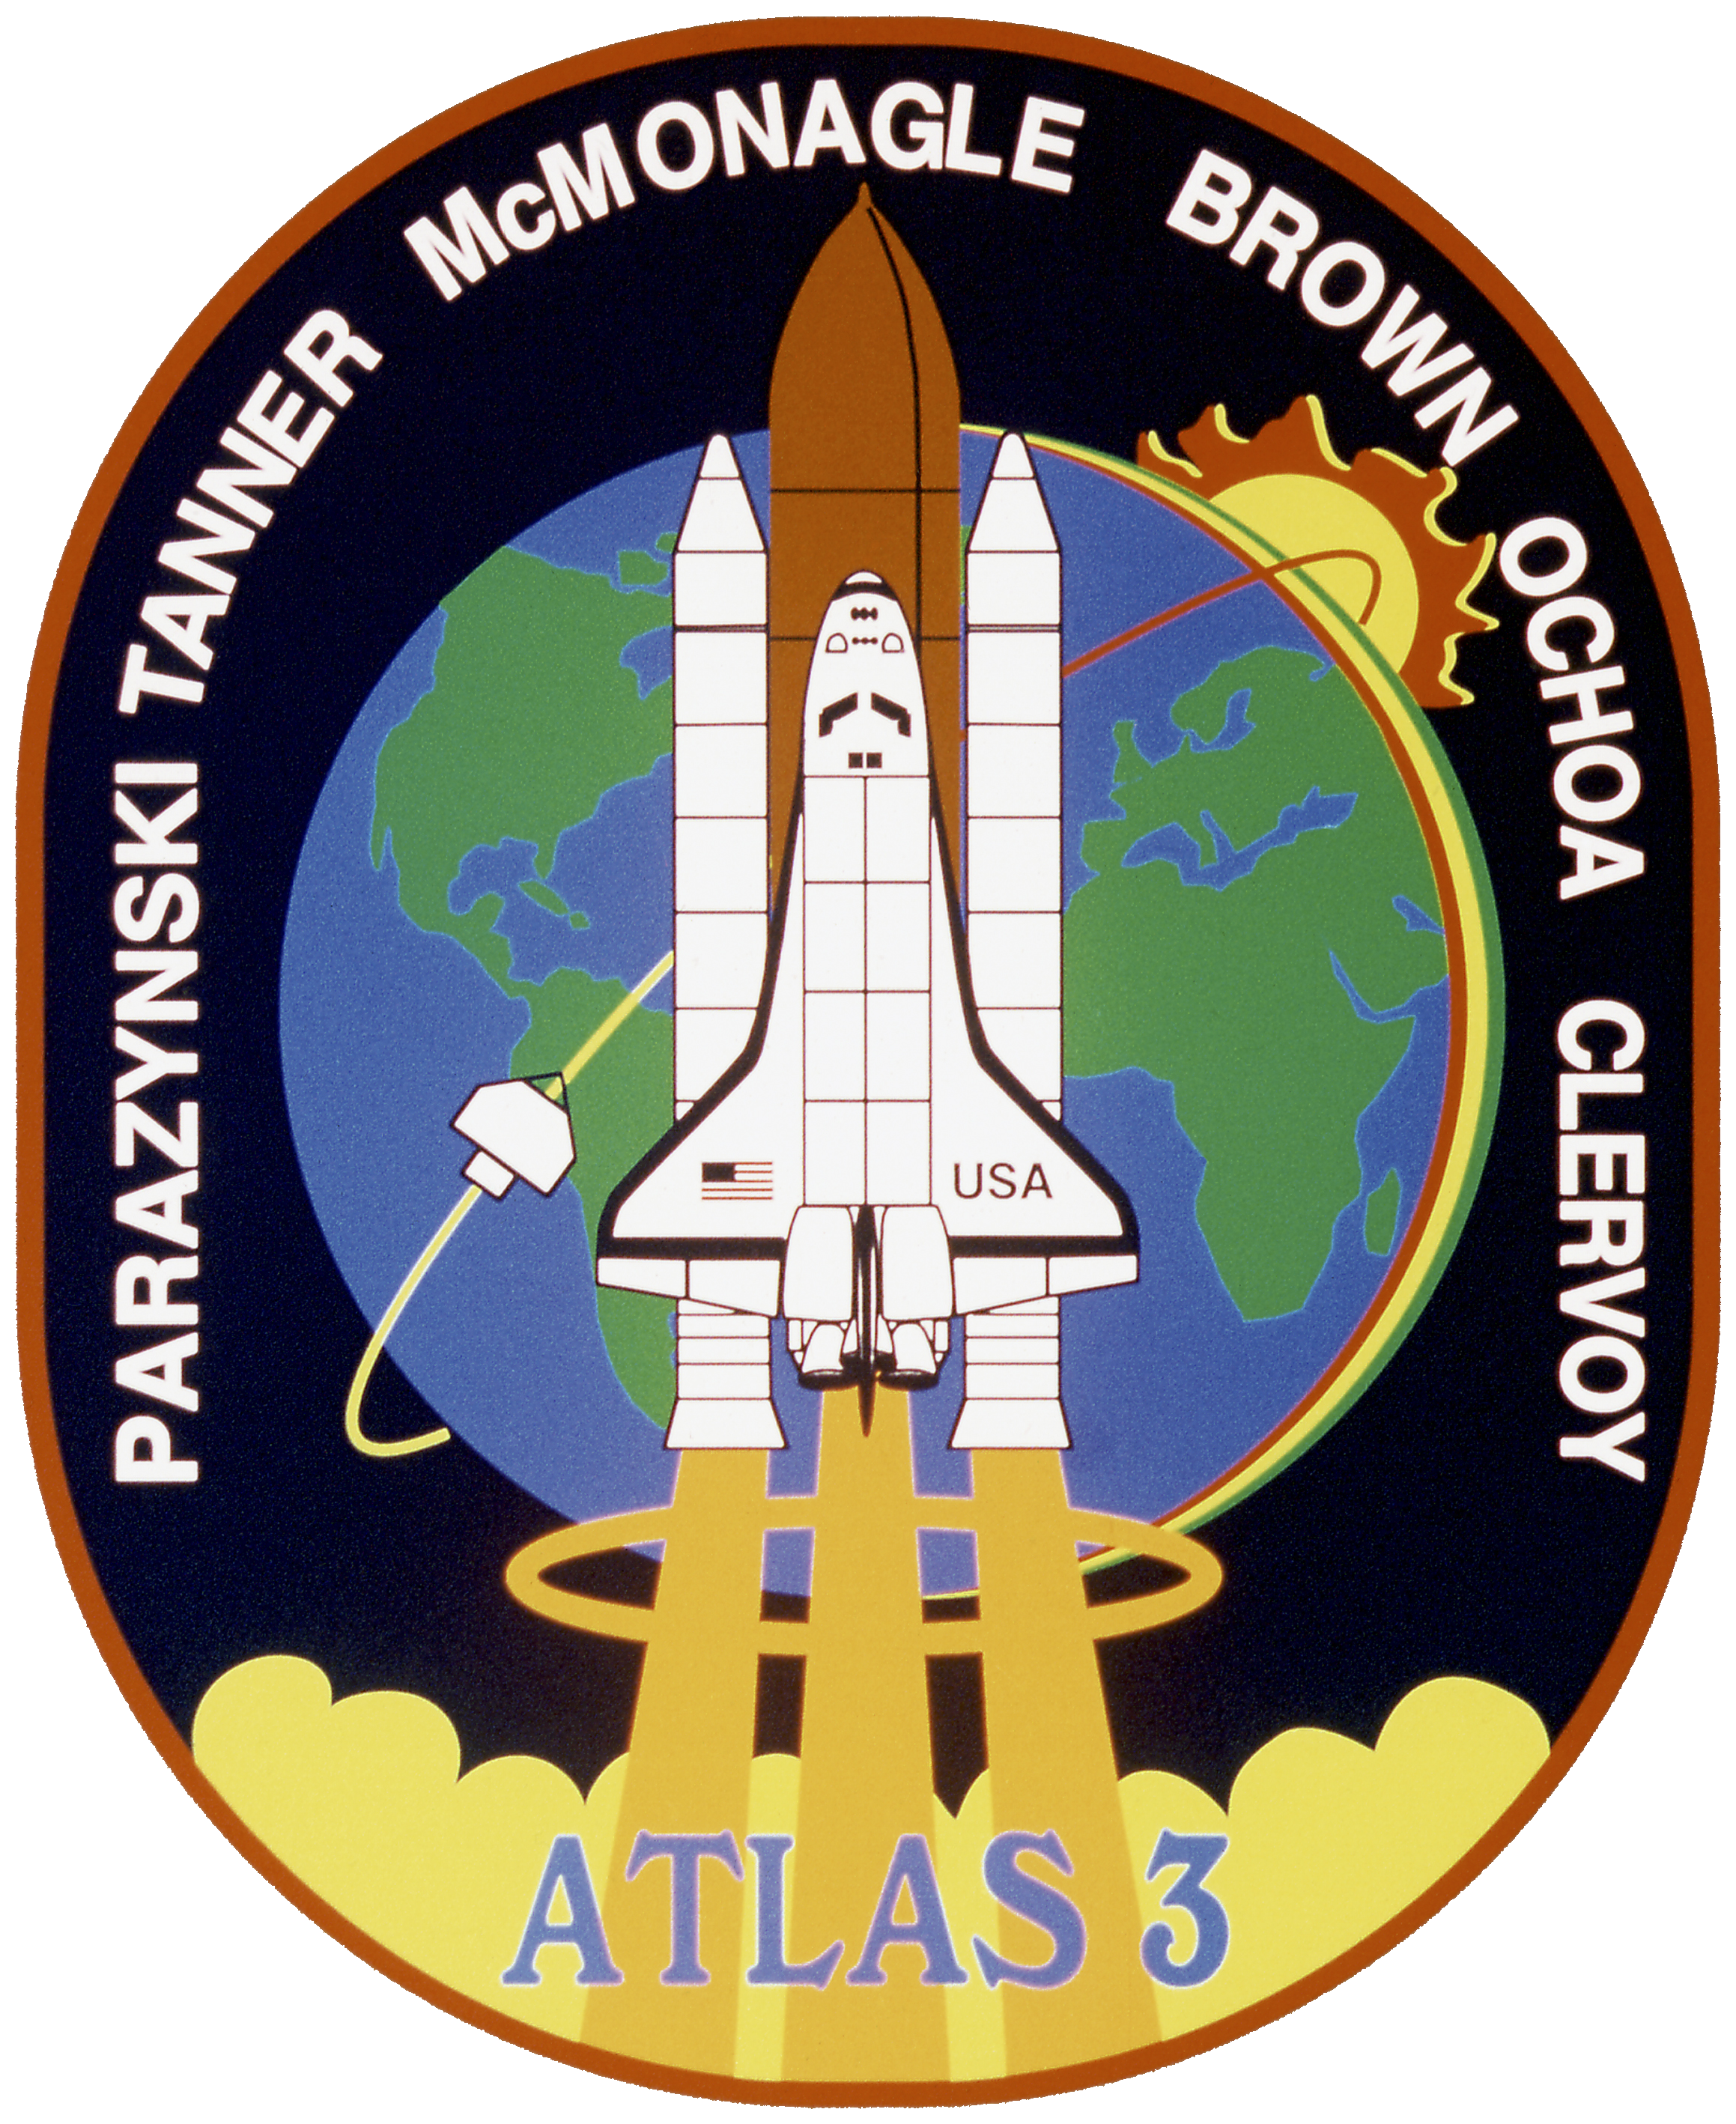 Sts-66-patch.png